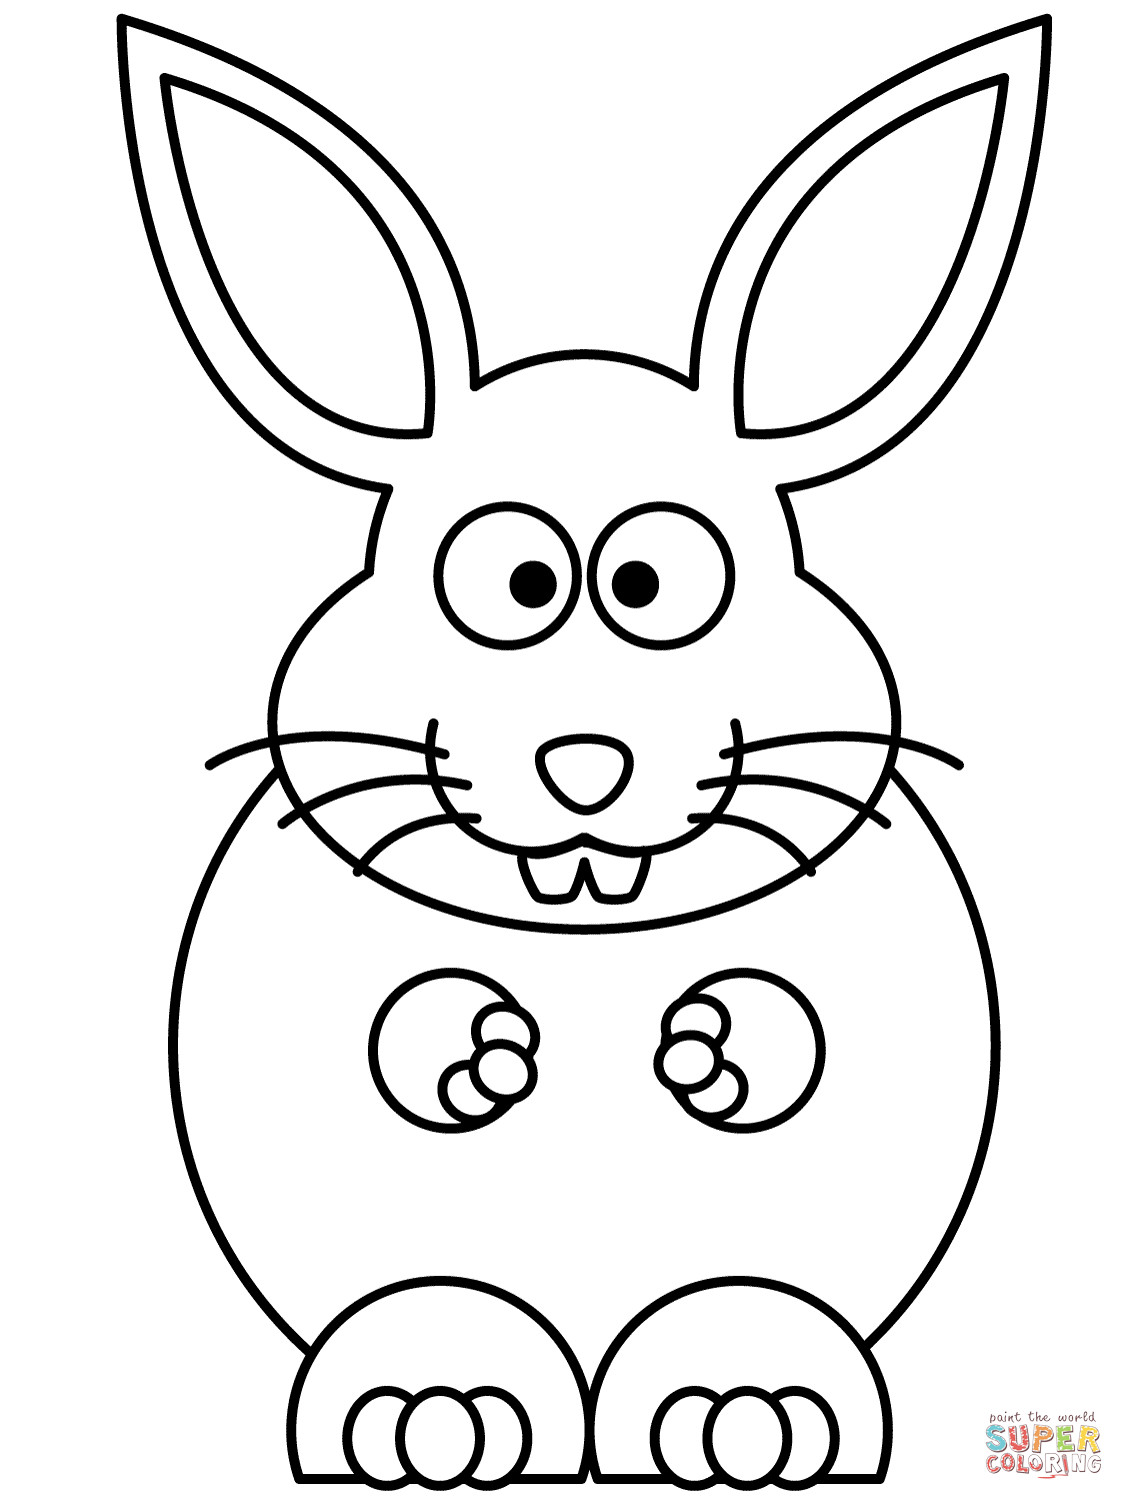 rabbit images for colouring free printable rabbit coloring pages for kids rabbit images colouring for